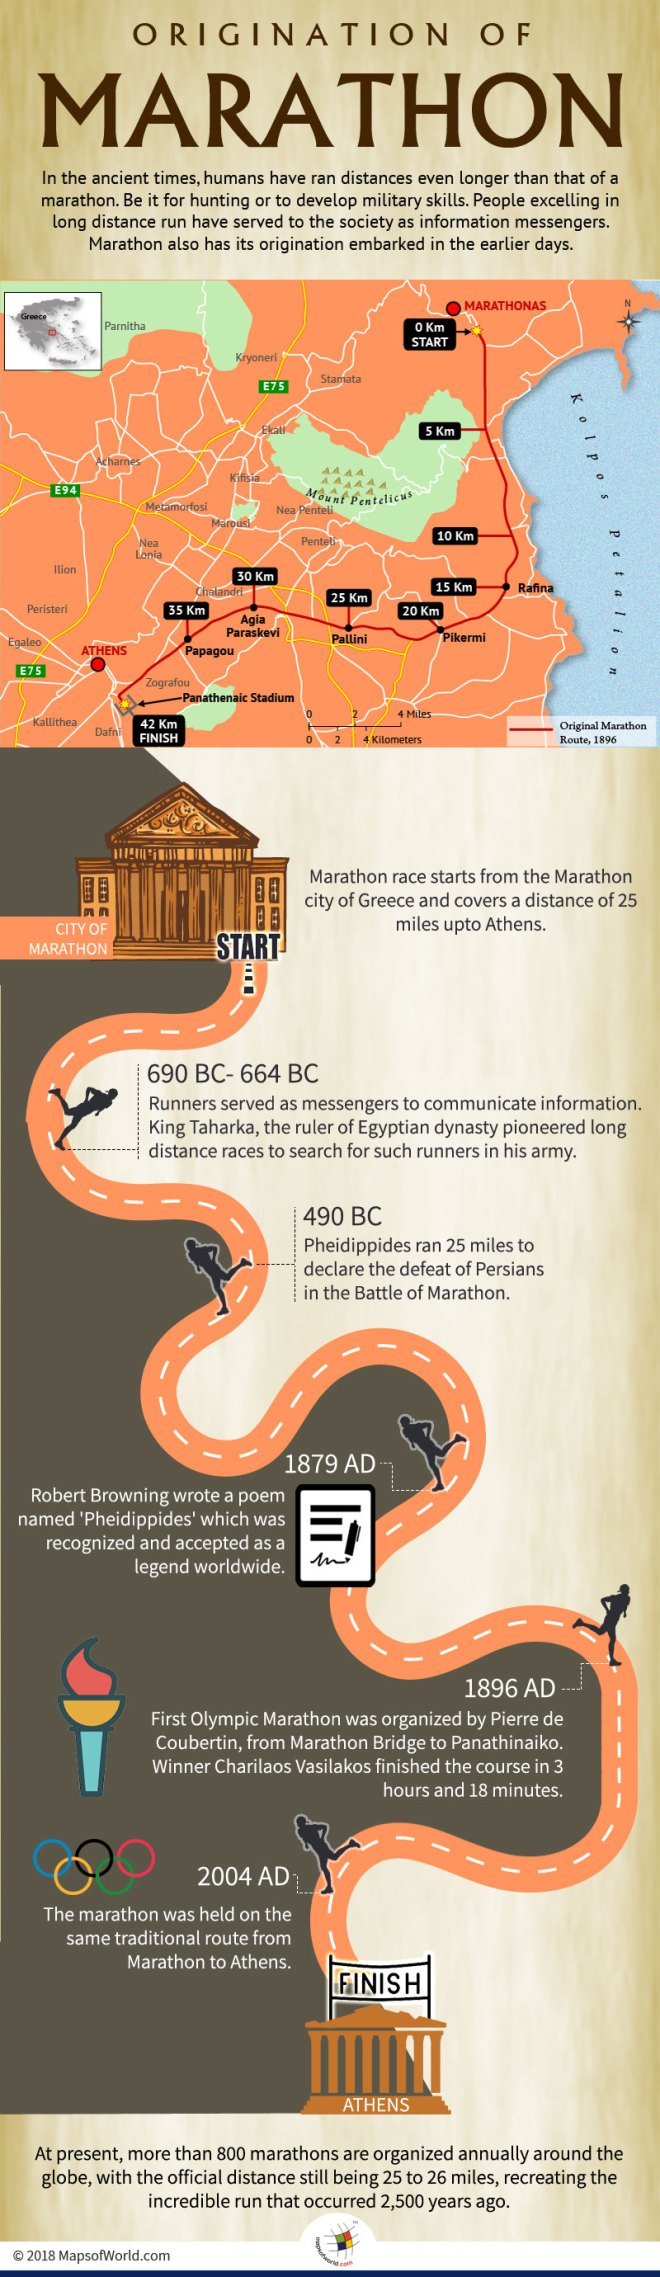 How did the Marathon originate?